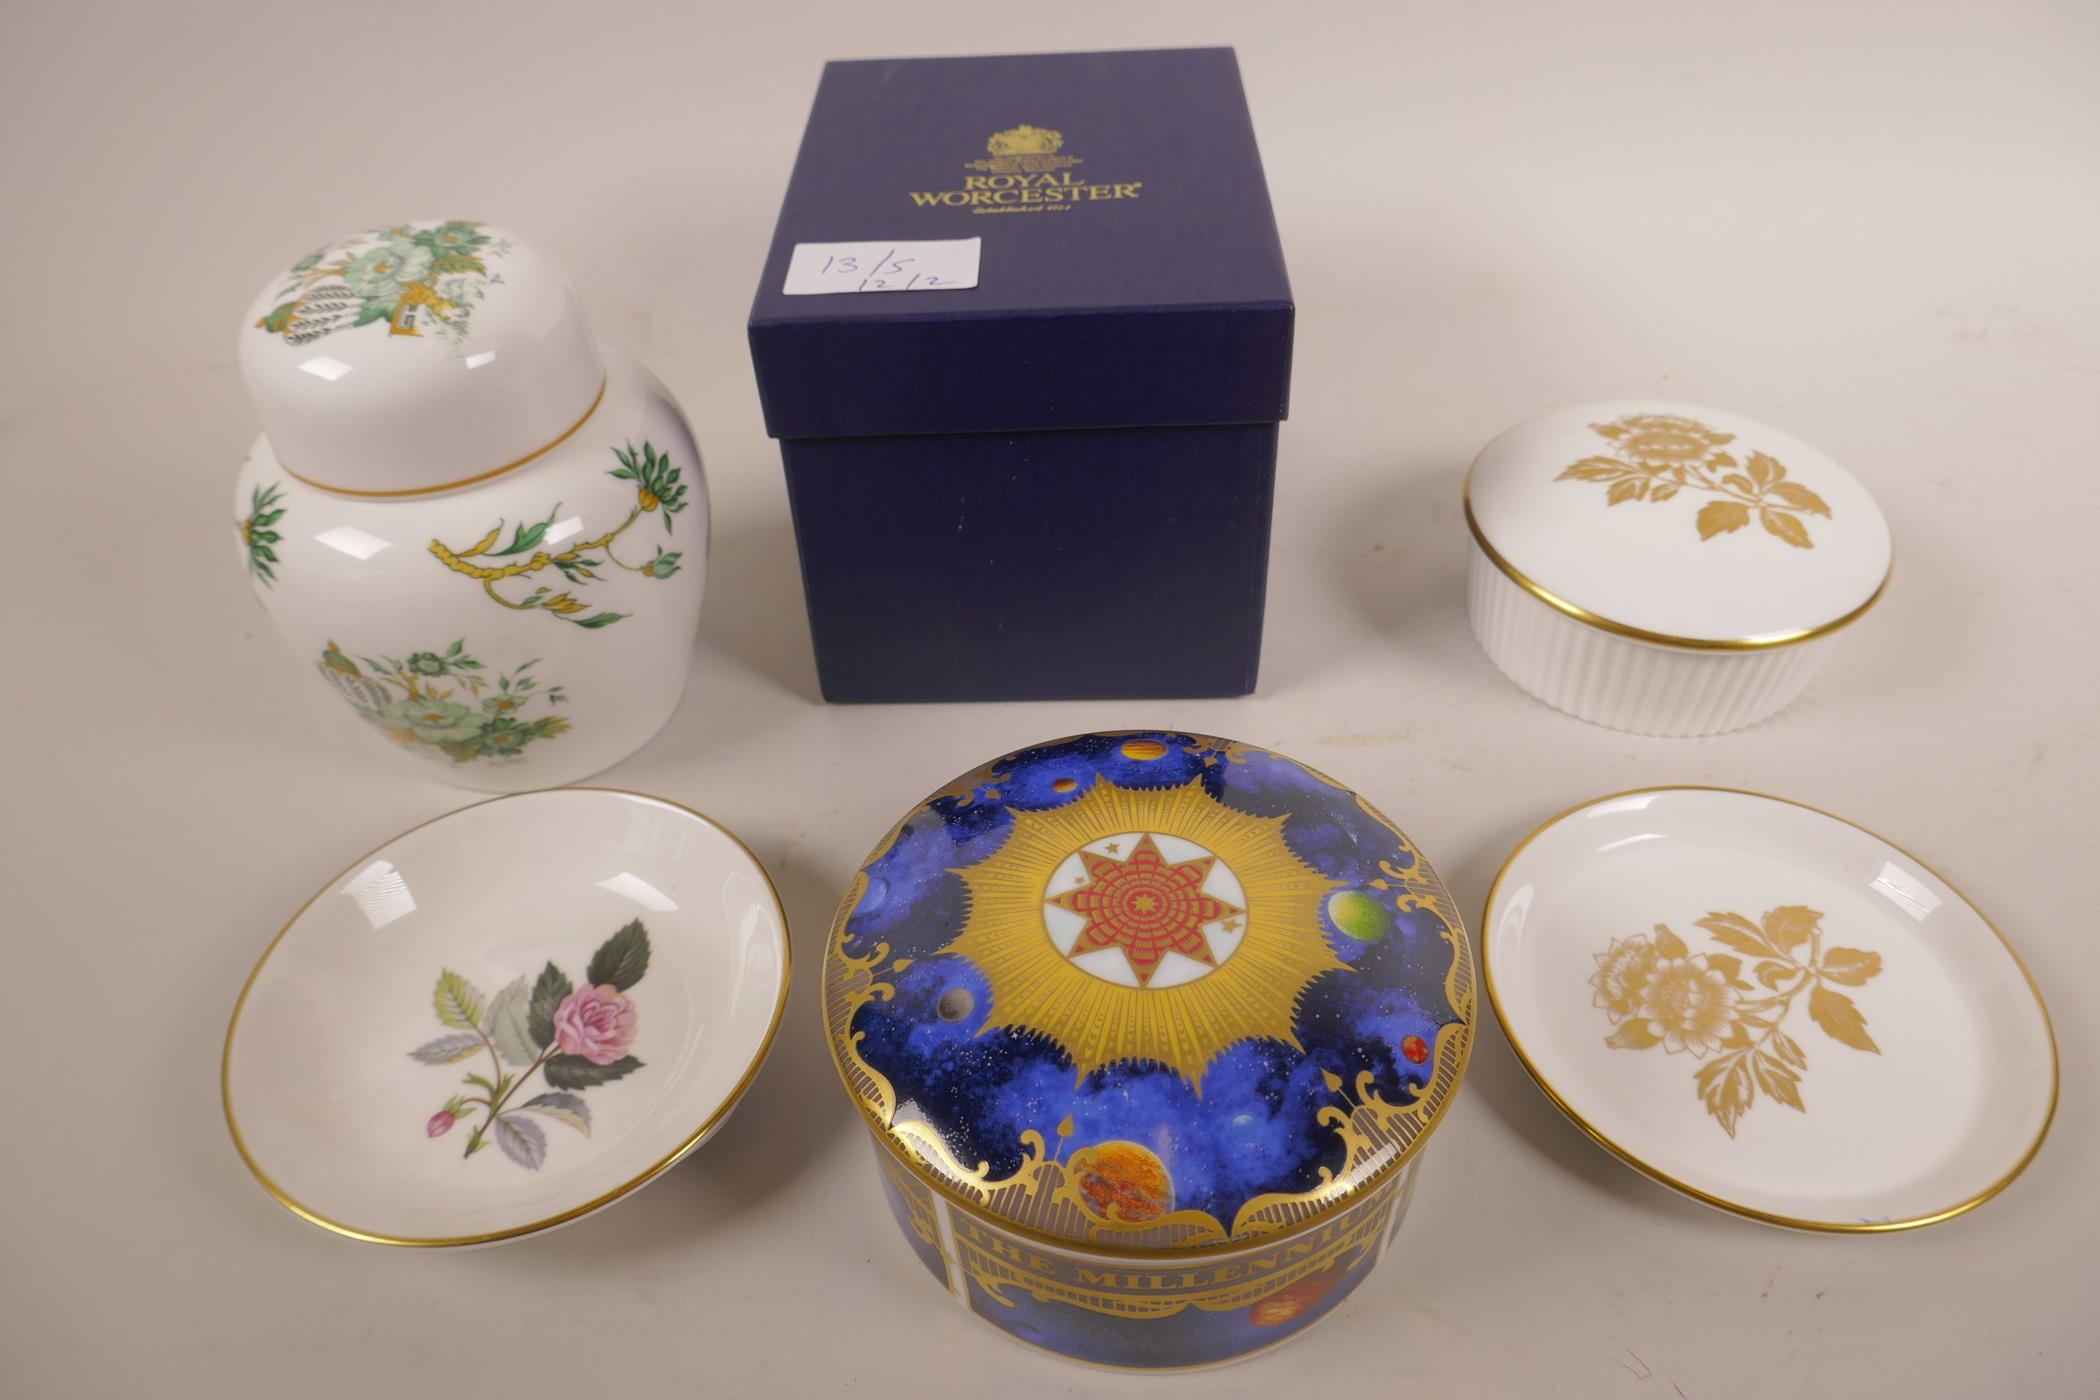 Lot 13 - A Royal Worcester porcelain Celestial 'Millenium' pot and cover, stamped to base, in original box, a